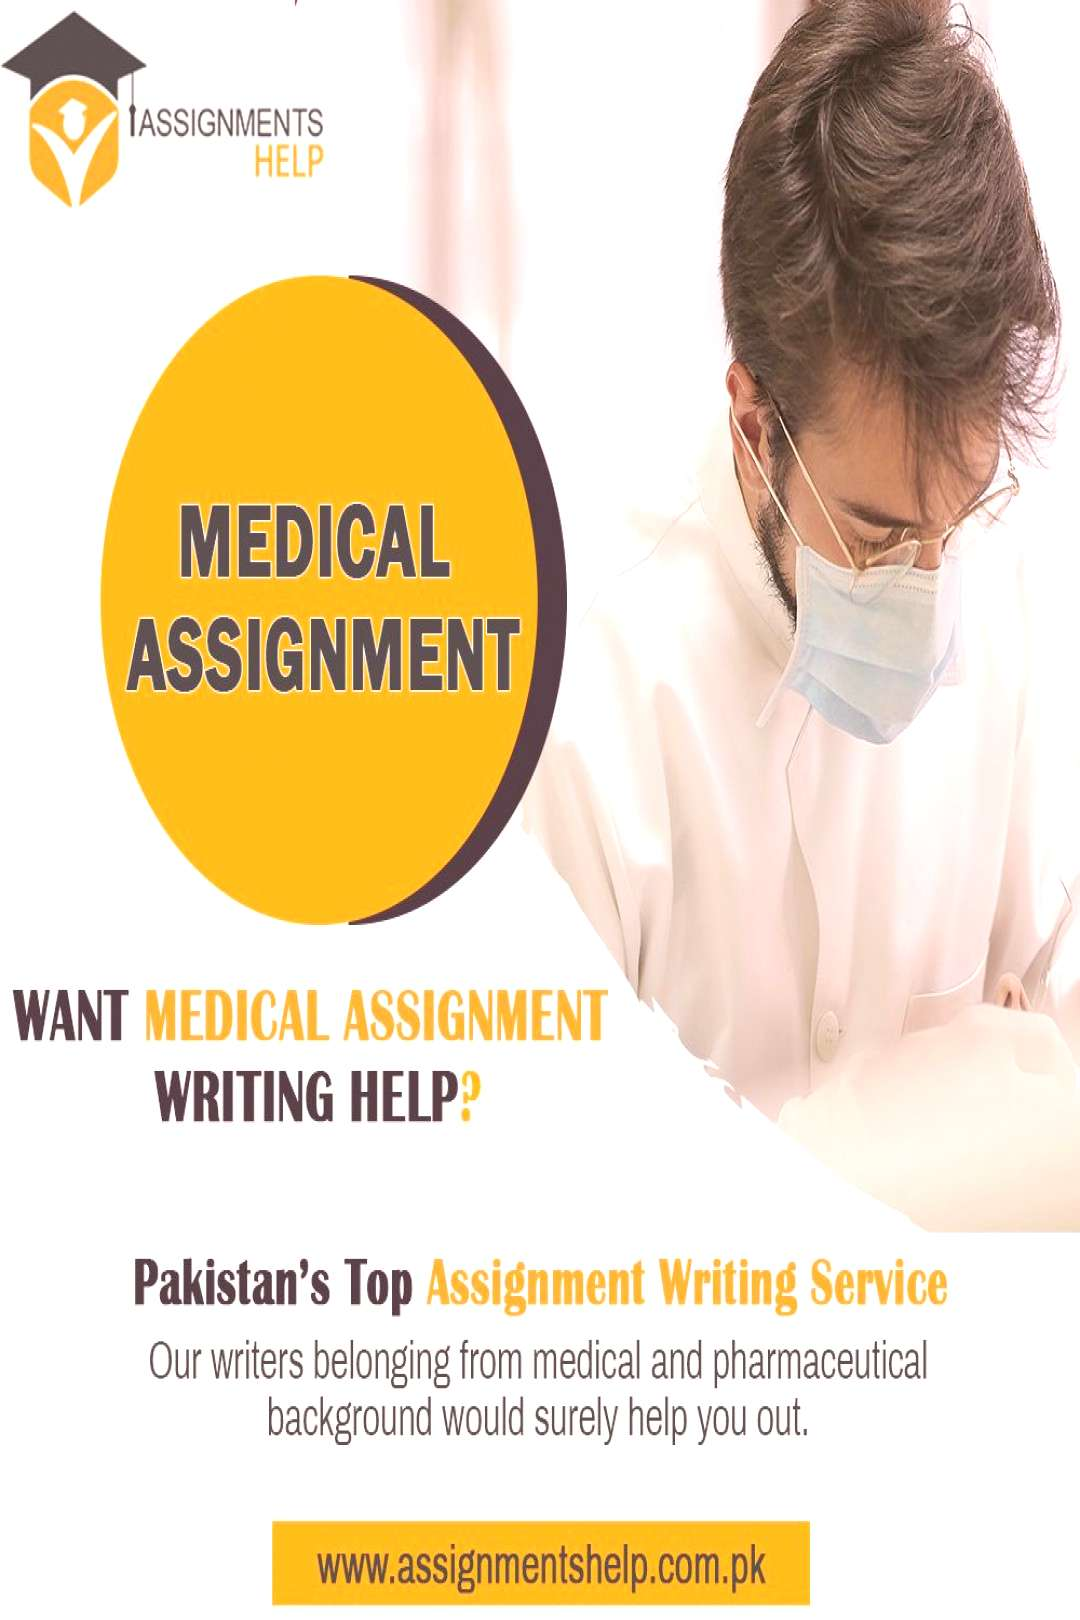 WANT MEDICAL ASSIGNMENT WRITING HELP